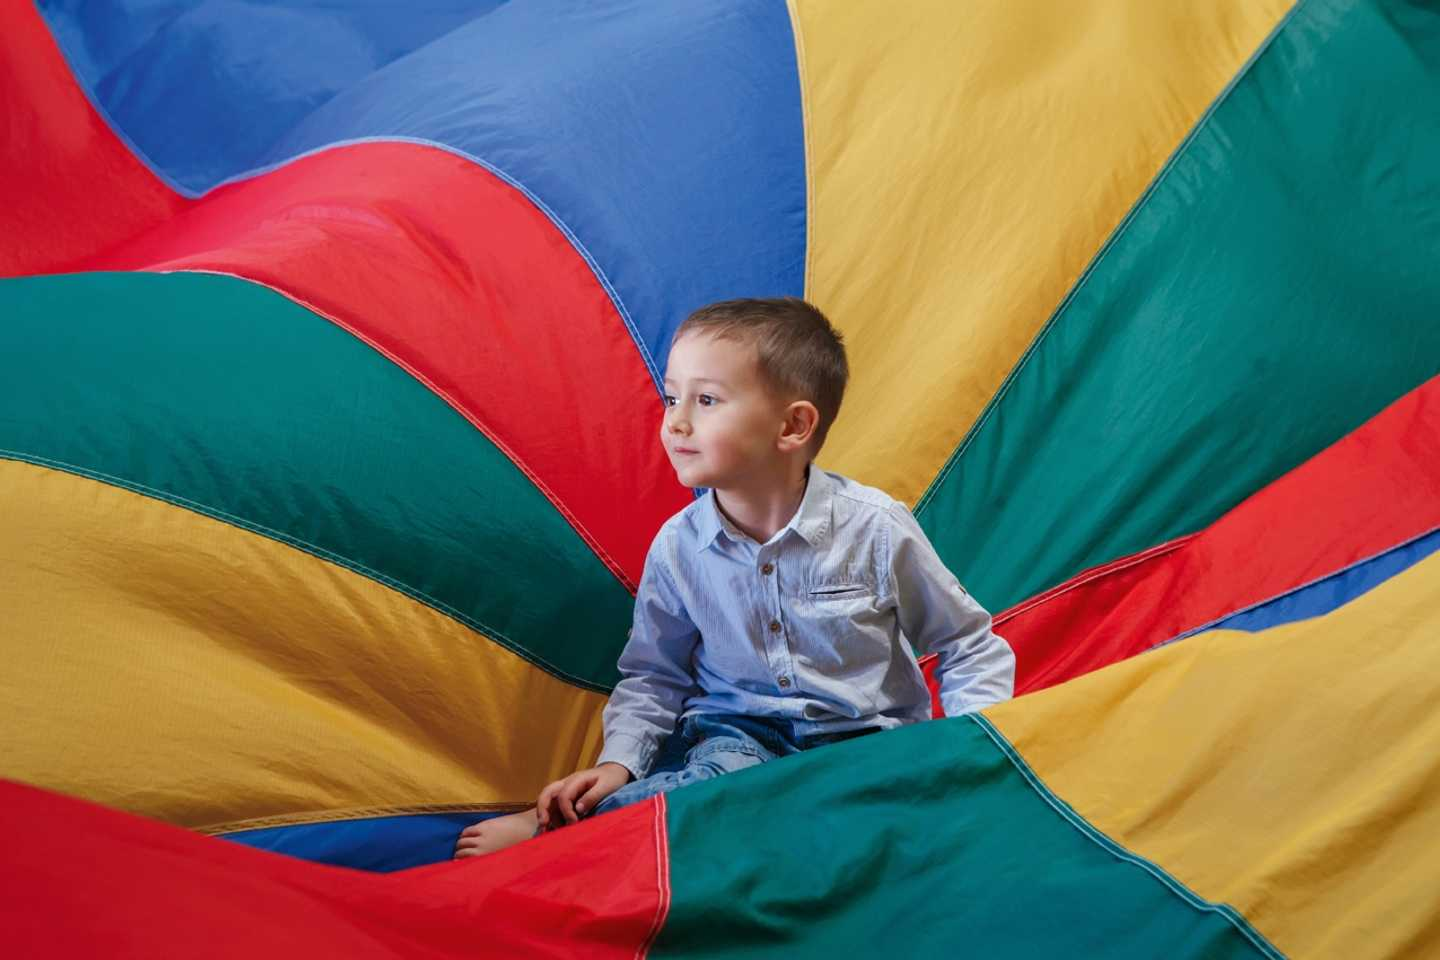 Toddler playing in parachute game